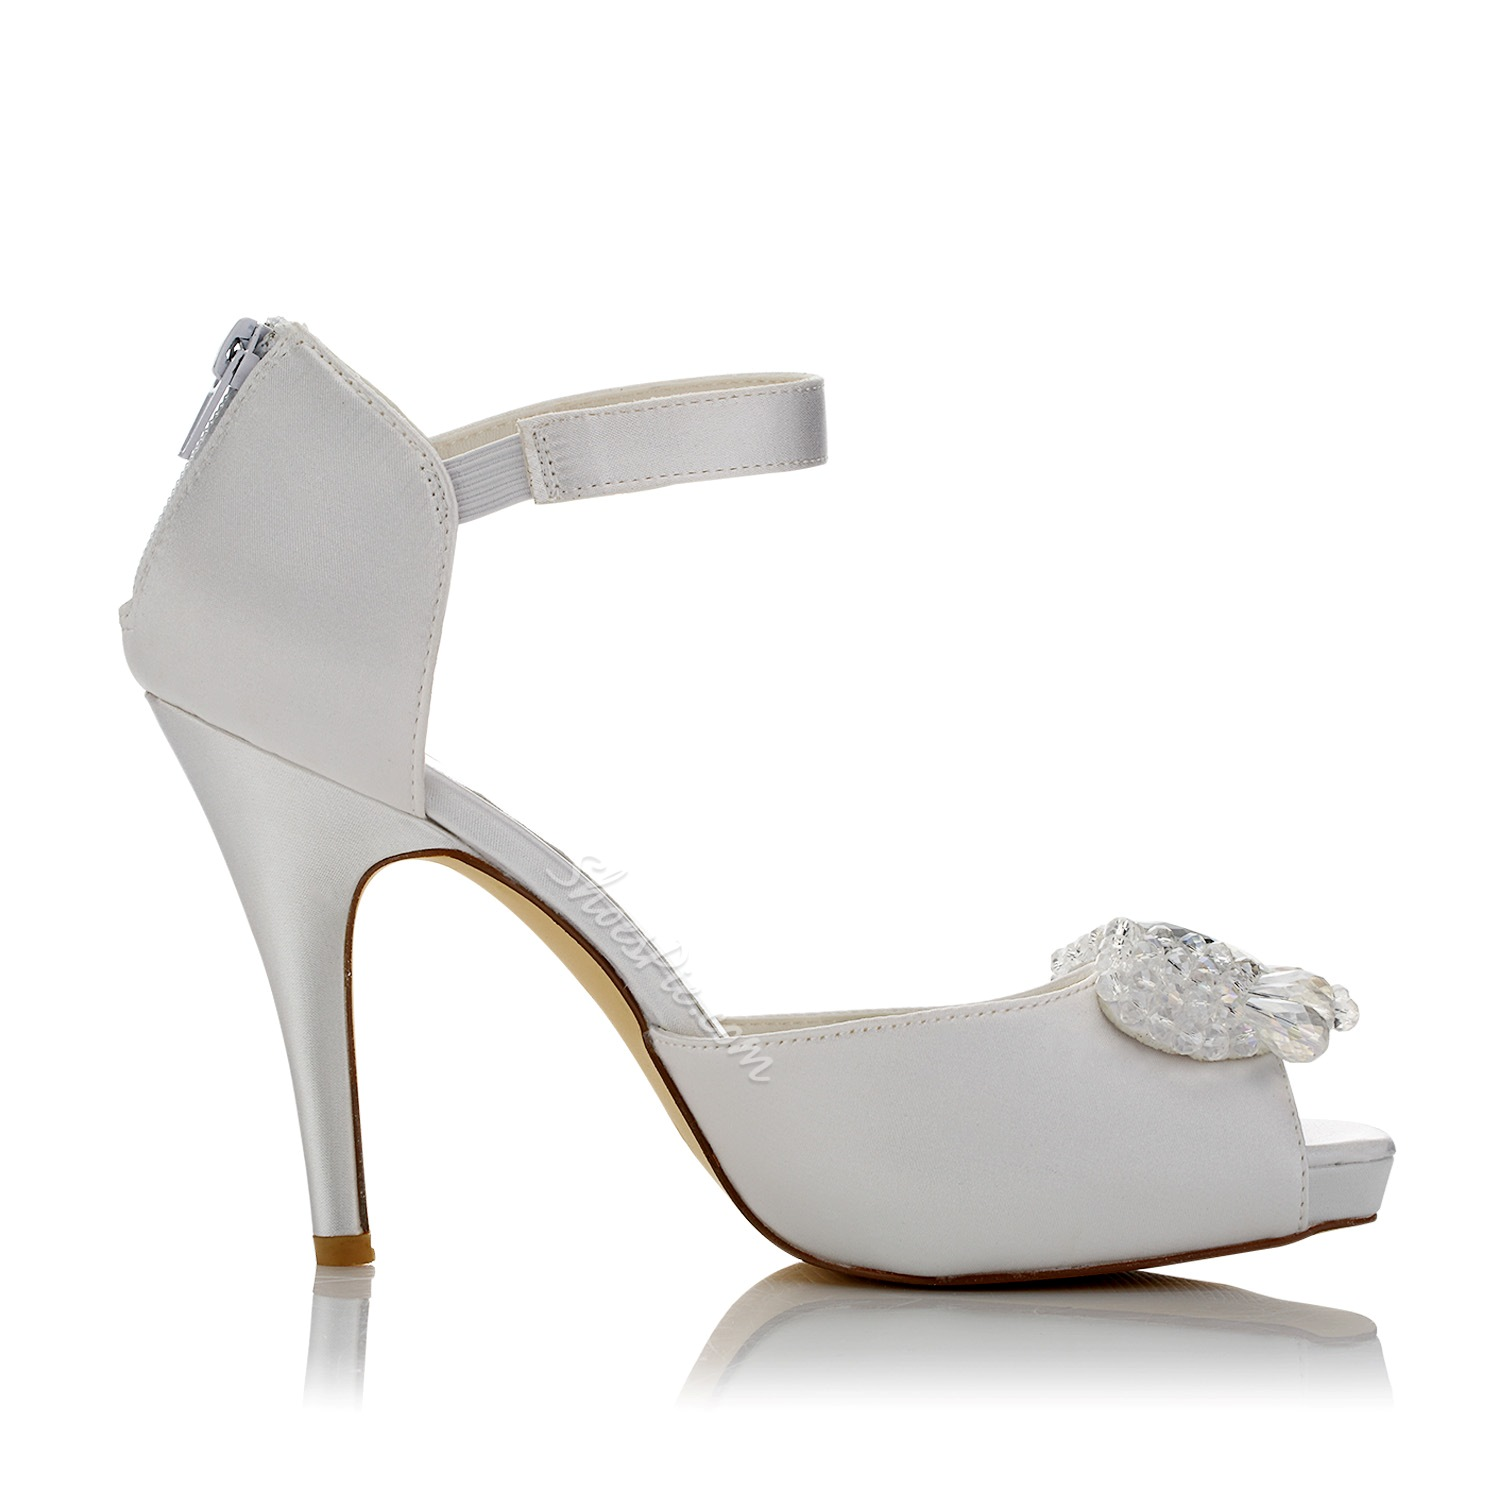 Shoespie Rhinestone Beads Peep Toe Bridal Shoes